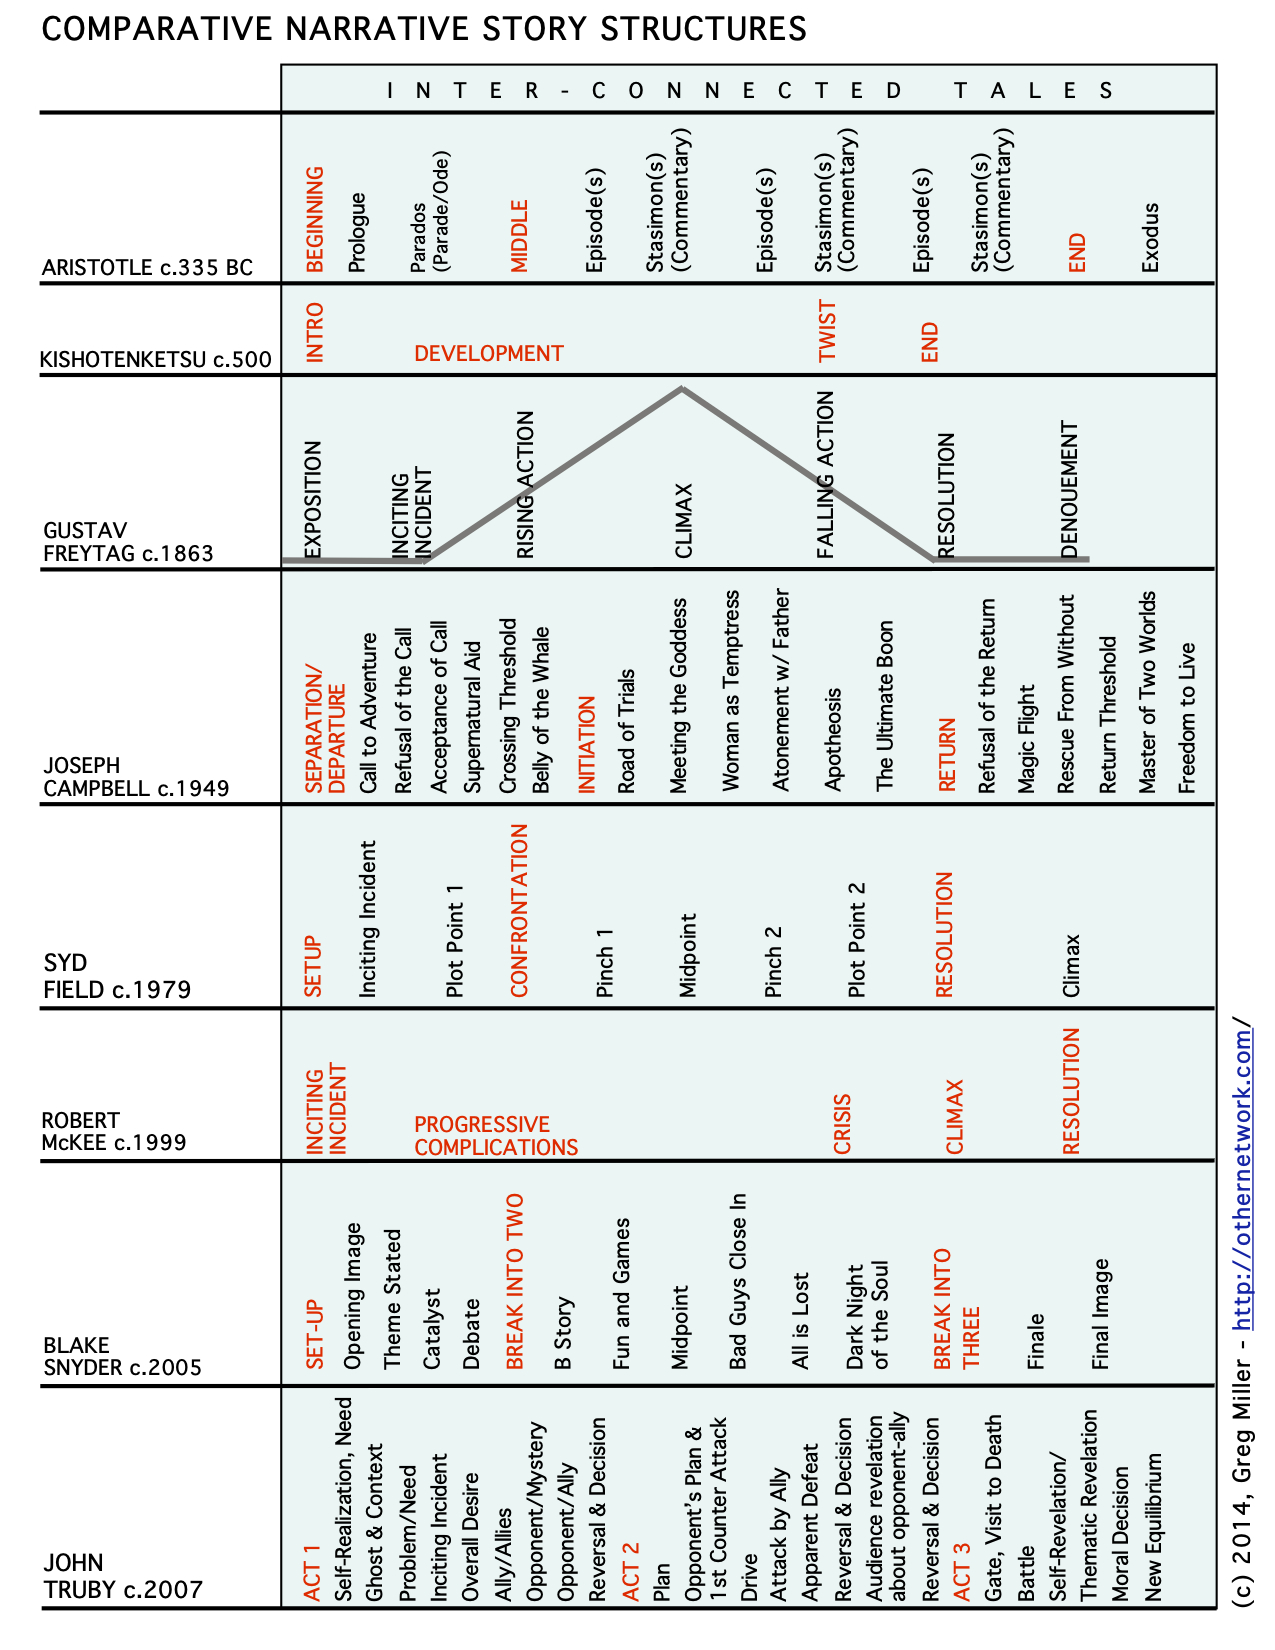 Comparative Narrative Story Structures Charted